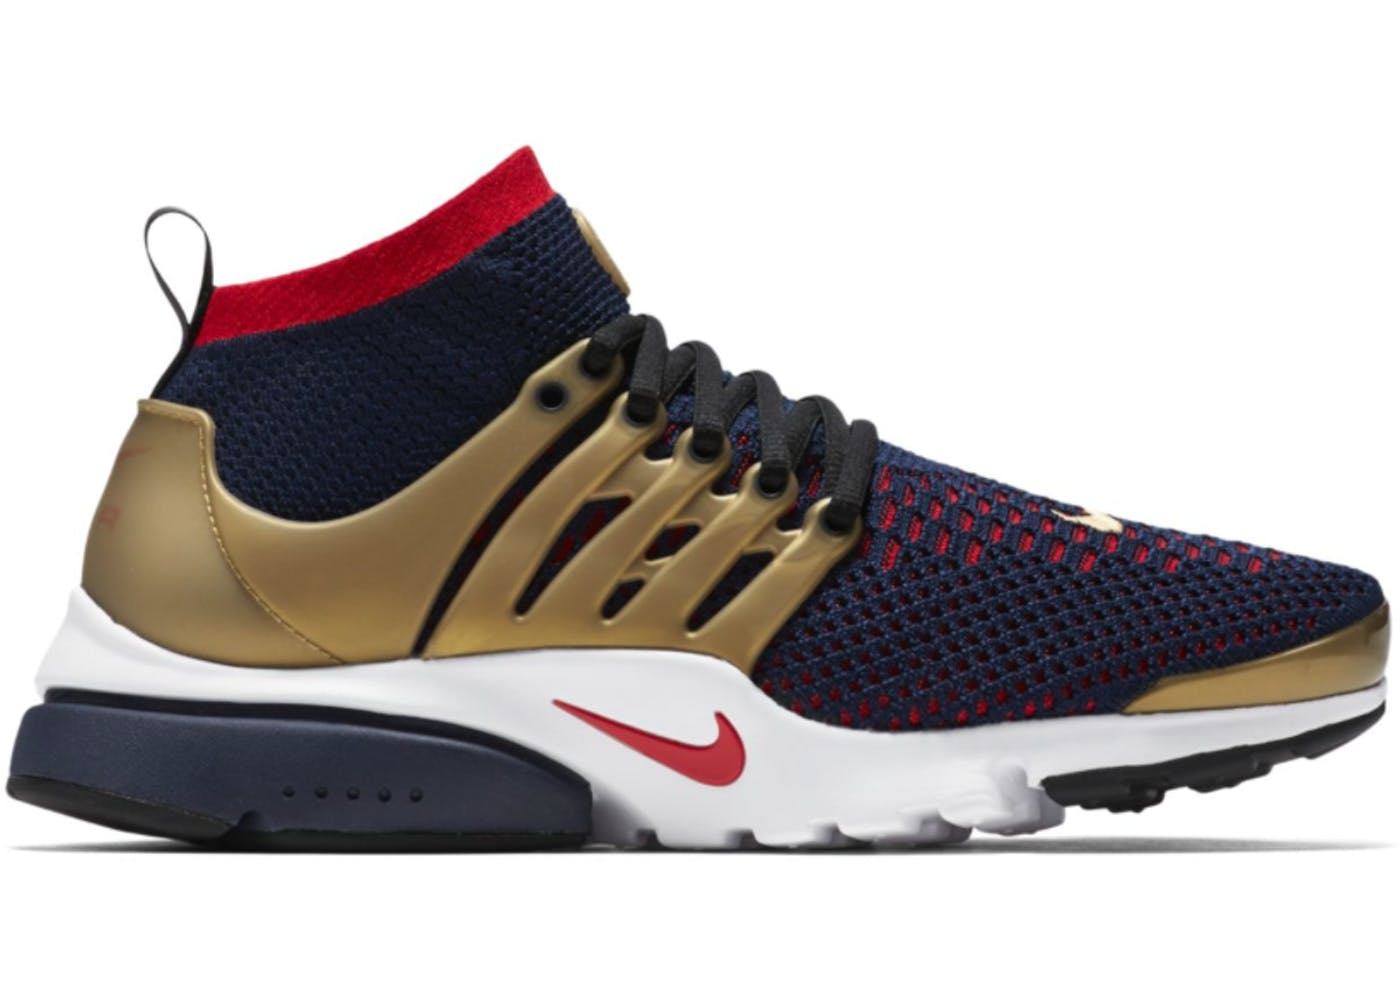 75a3d7f7870c Nike Rio Olympic Summer 2016 Releases - StockX News